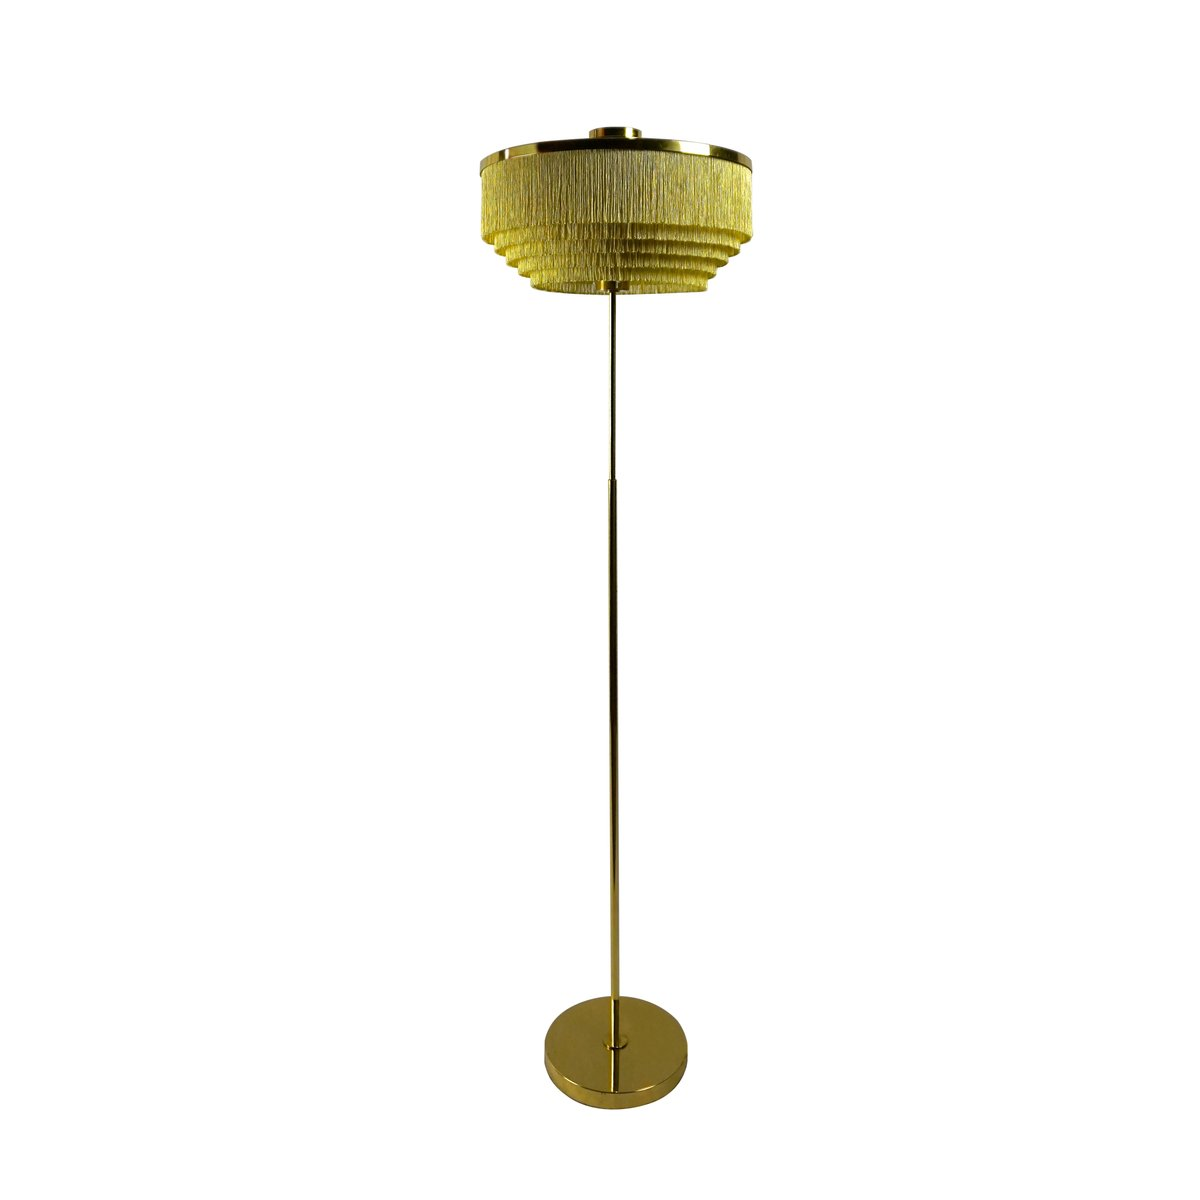 vintage model g110 silk fringe brass floor lamp by hansagne jakobsson